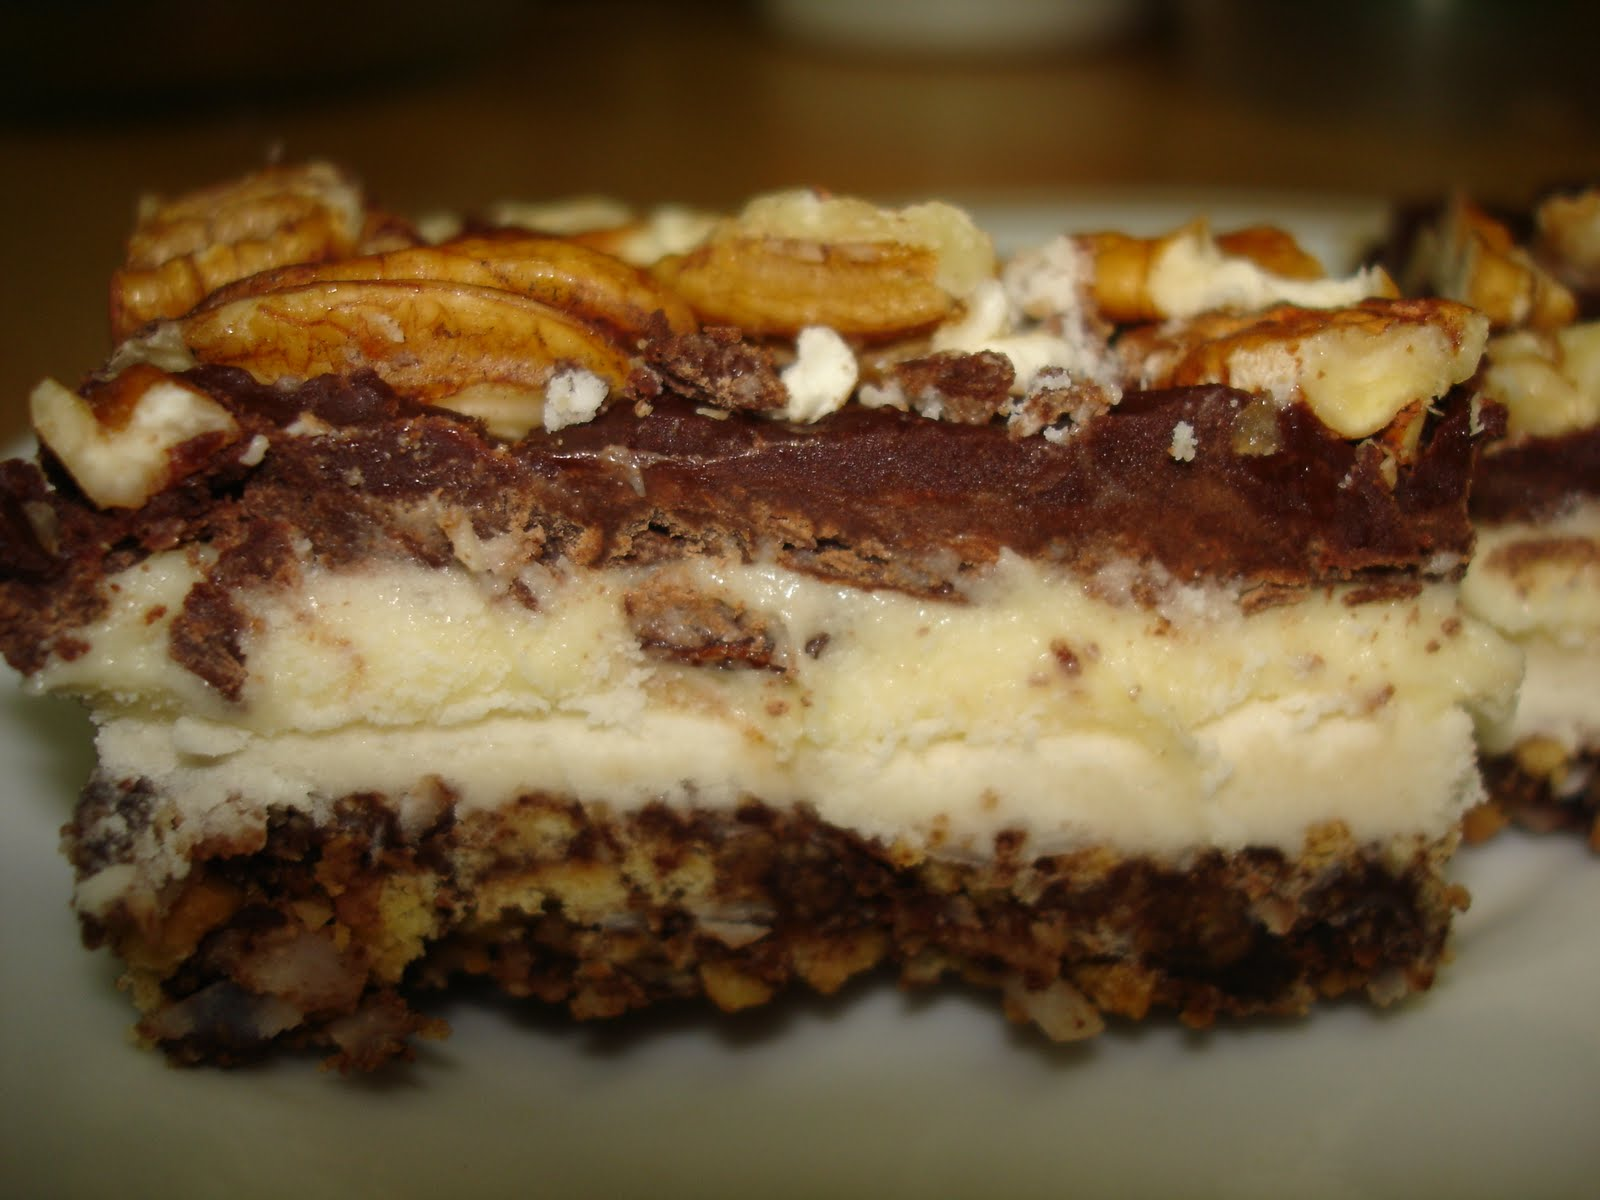 Food for foreigners nanaimo bars recipe for Best bar food recipes